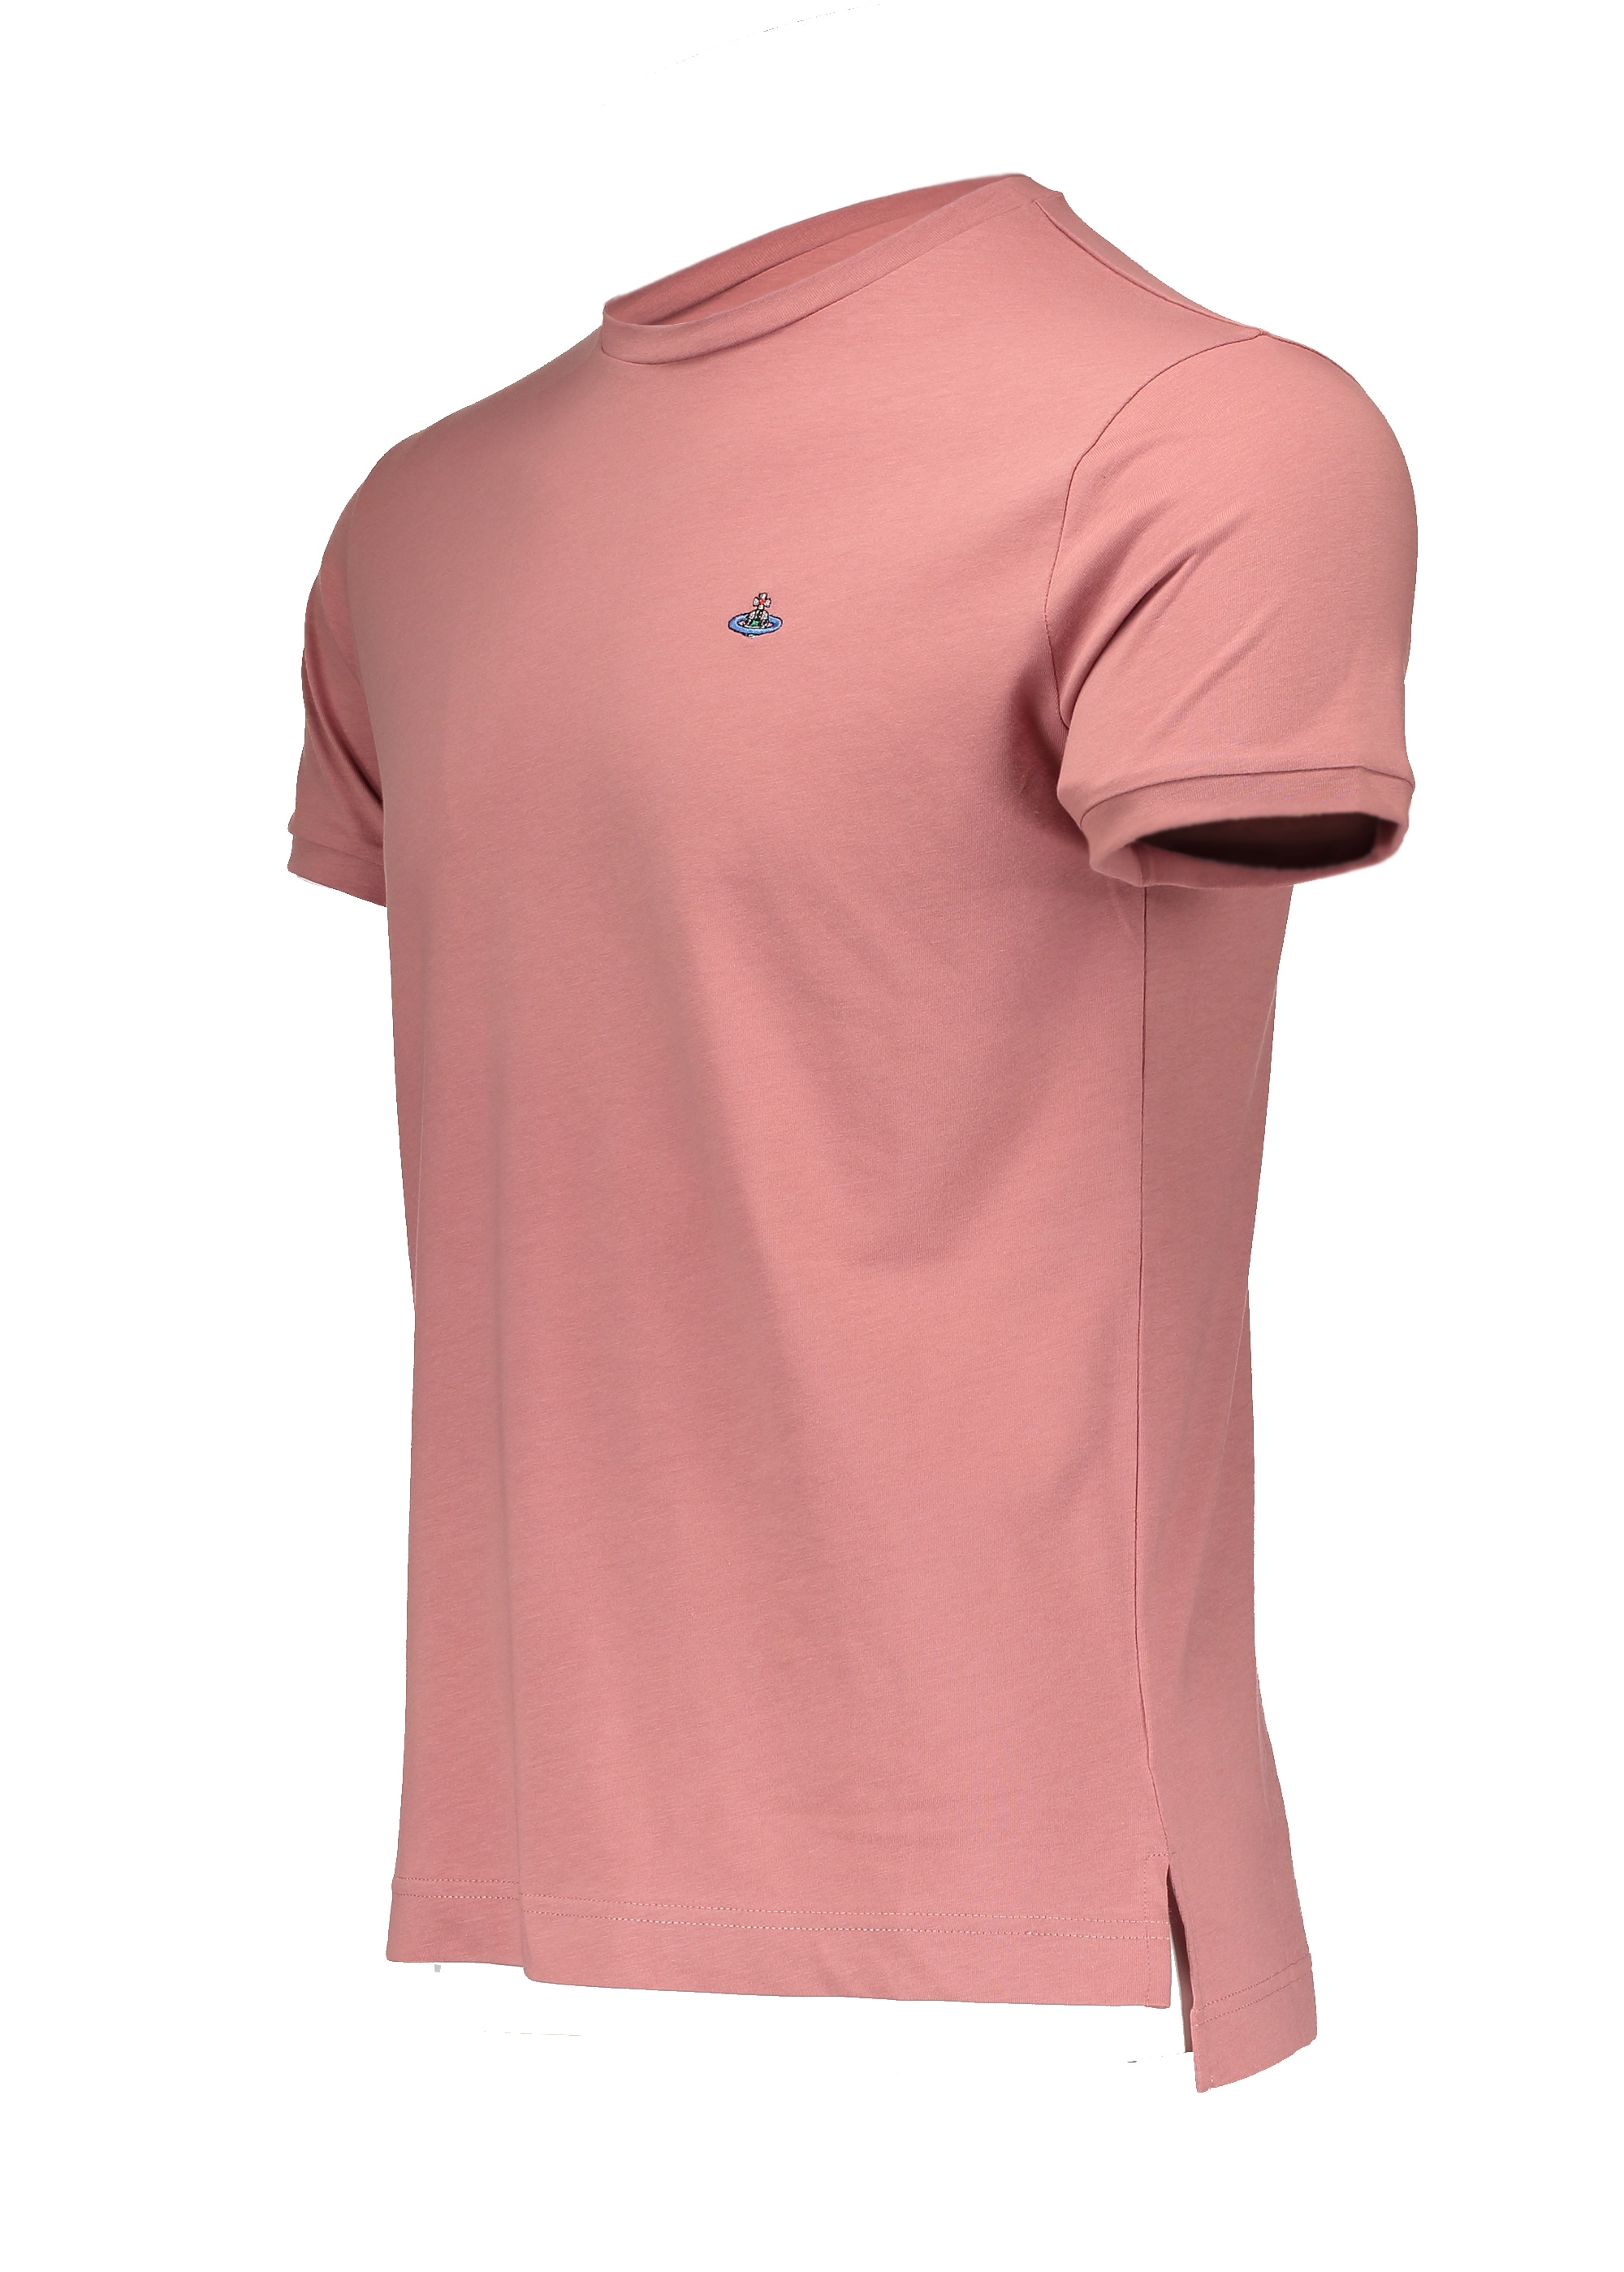 Embroidered logo t shirt pink from triads uk for Mens pink shirts uk